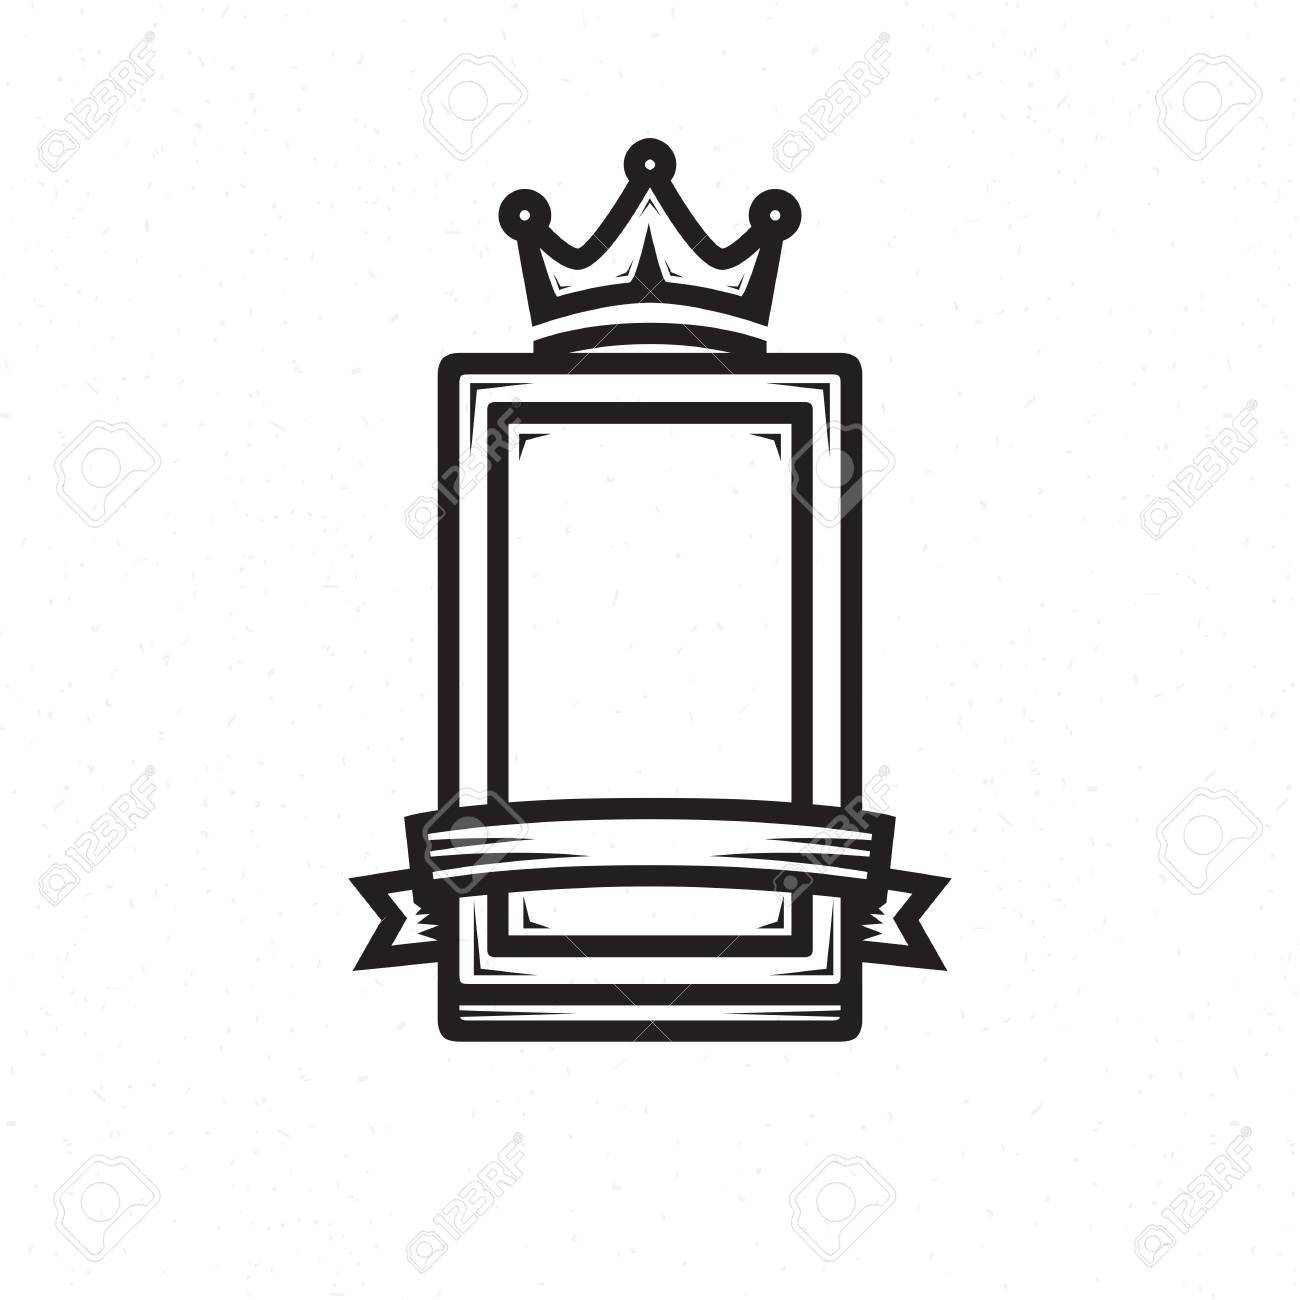 Shield Template For The Heraldic Logo Royalty Free Cliparts, Vectors ...